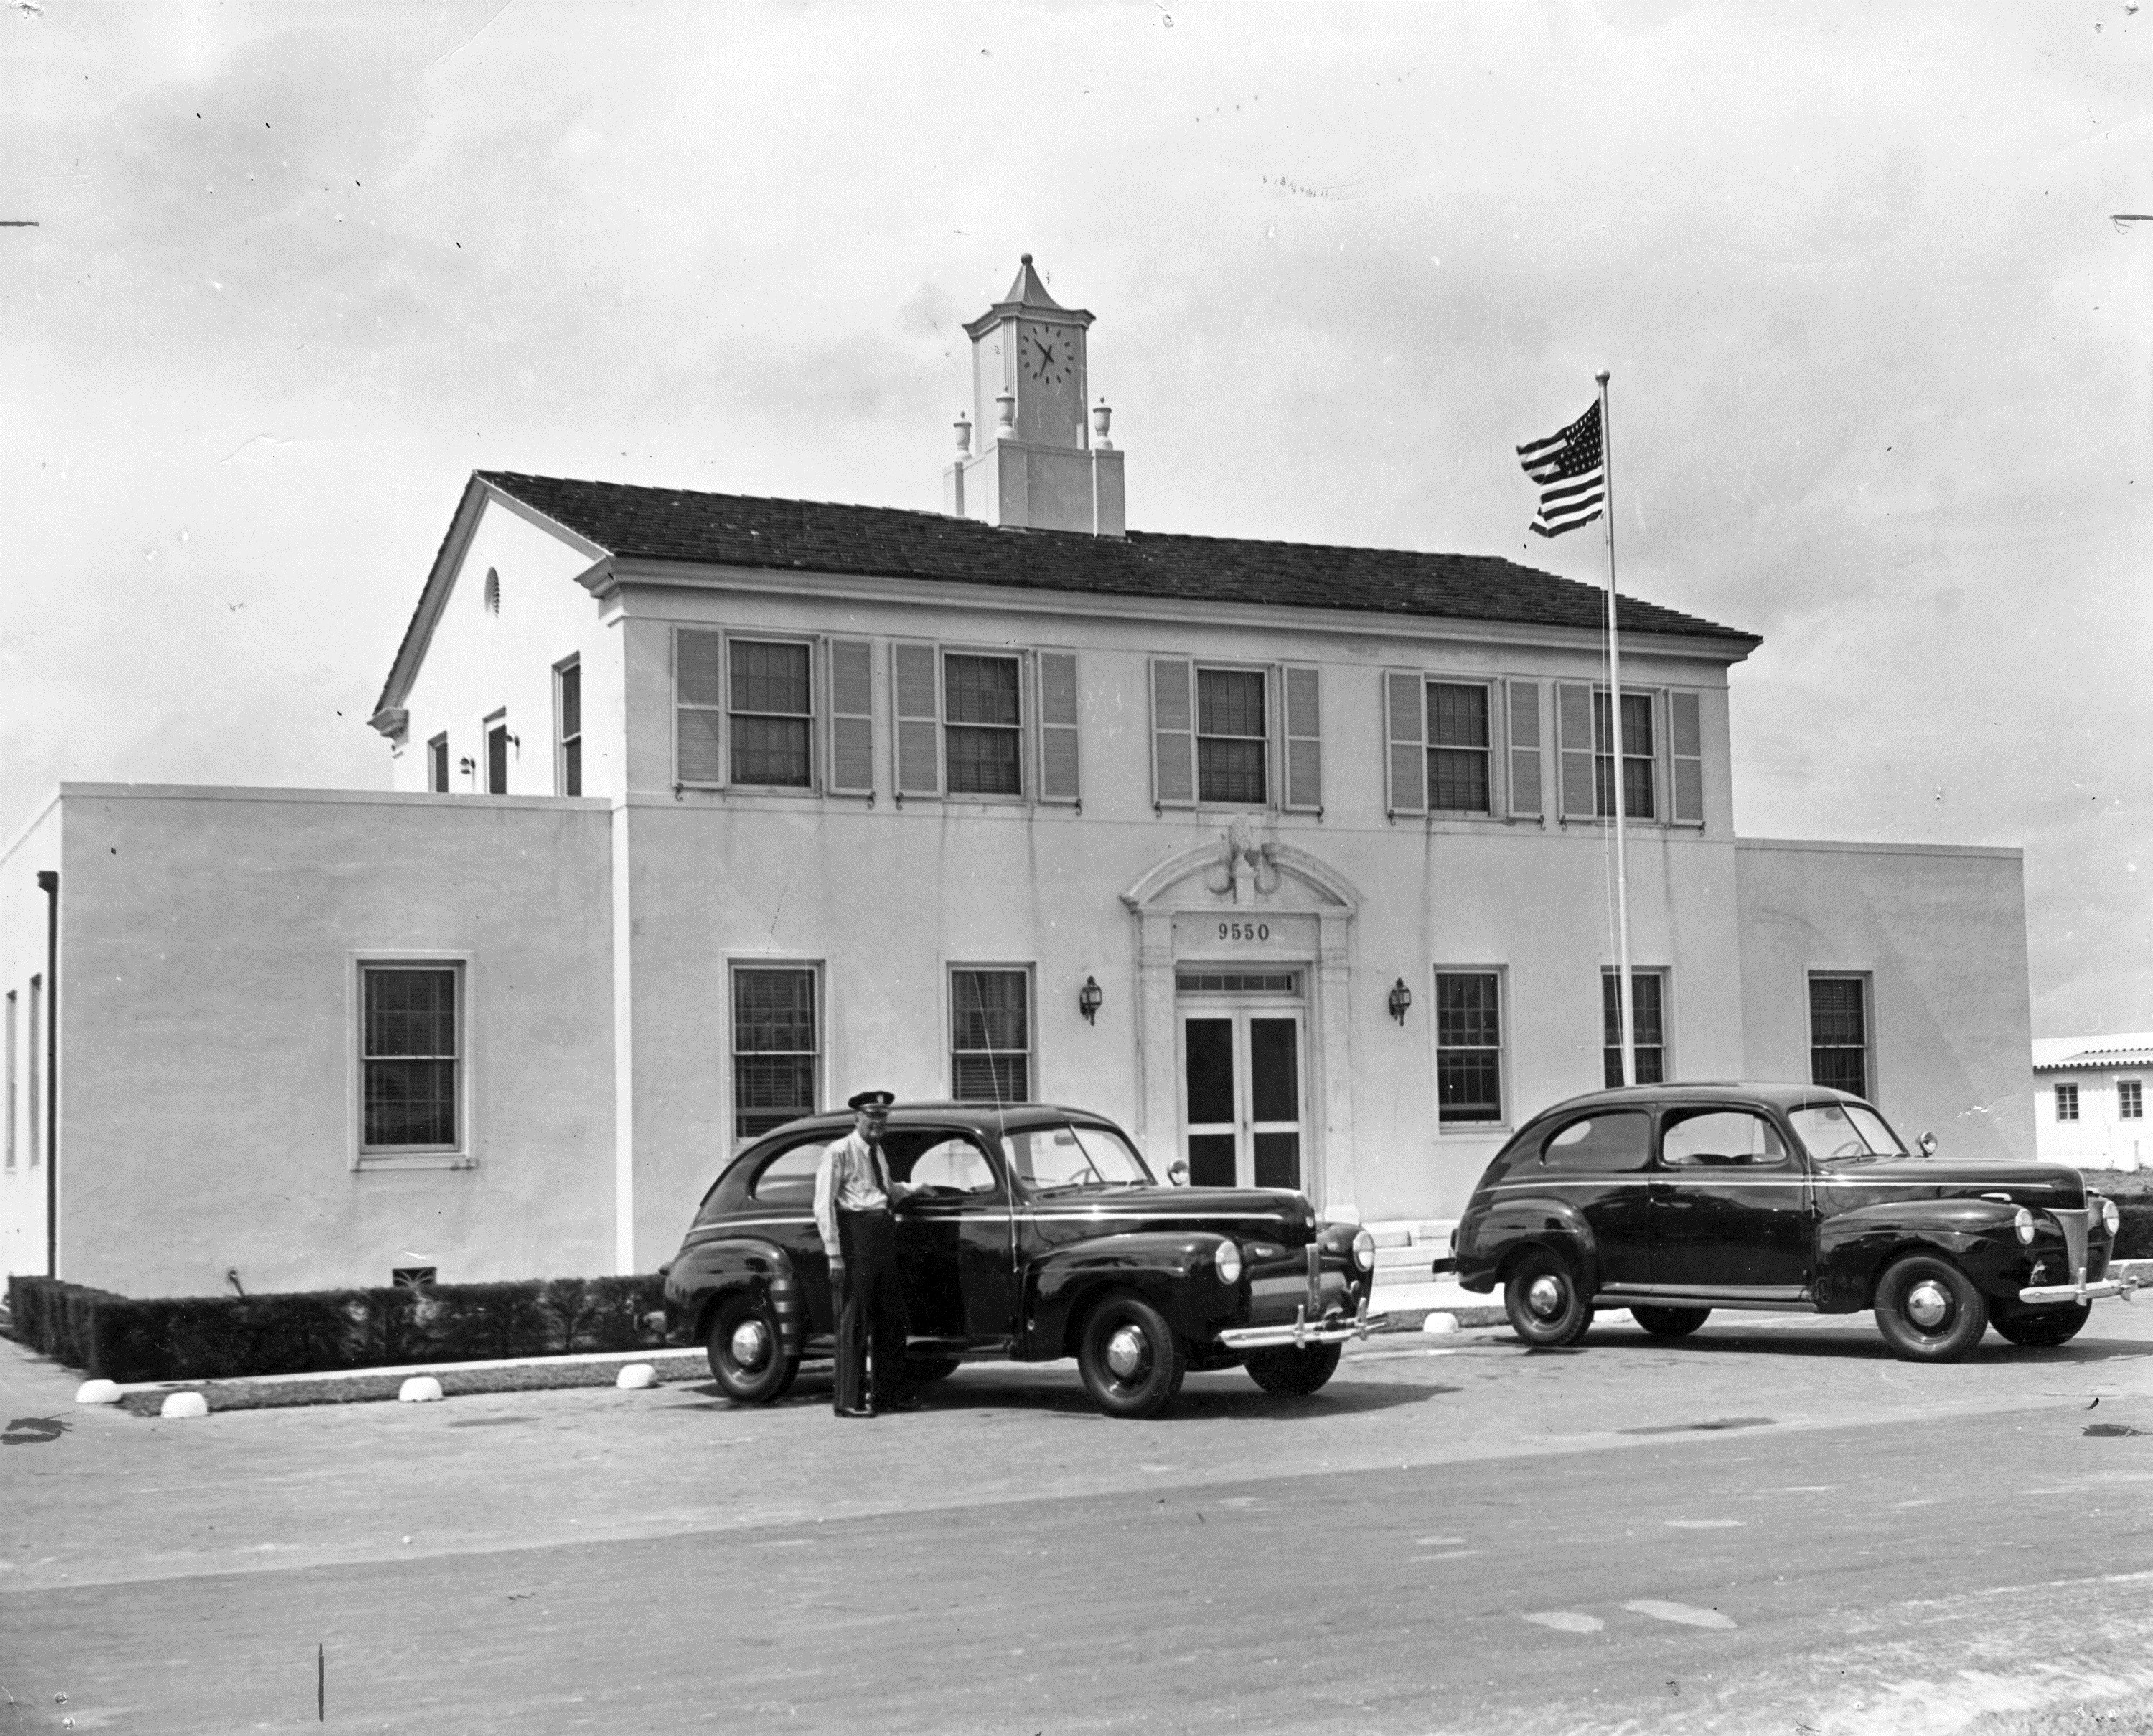 Surfside Town Hall, 1945. James P. Wendler, photographer. South Florida Photograph Collection, HistoryMiami Museum, 1995-339-8.